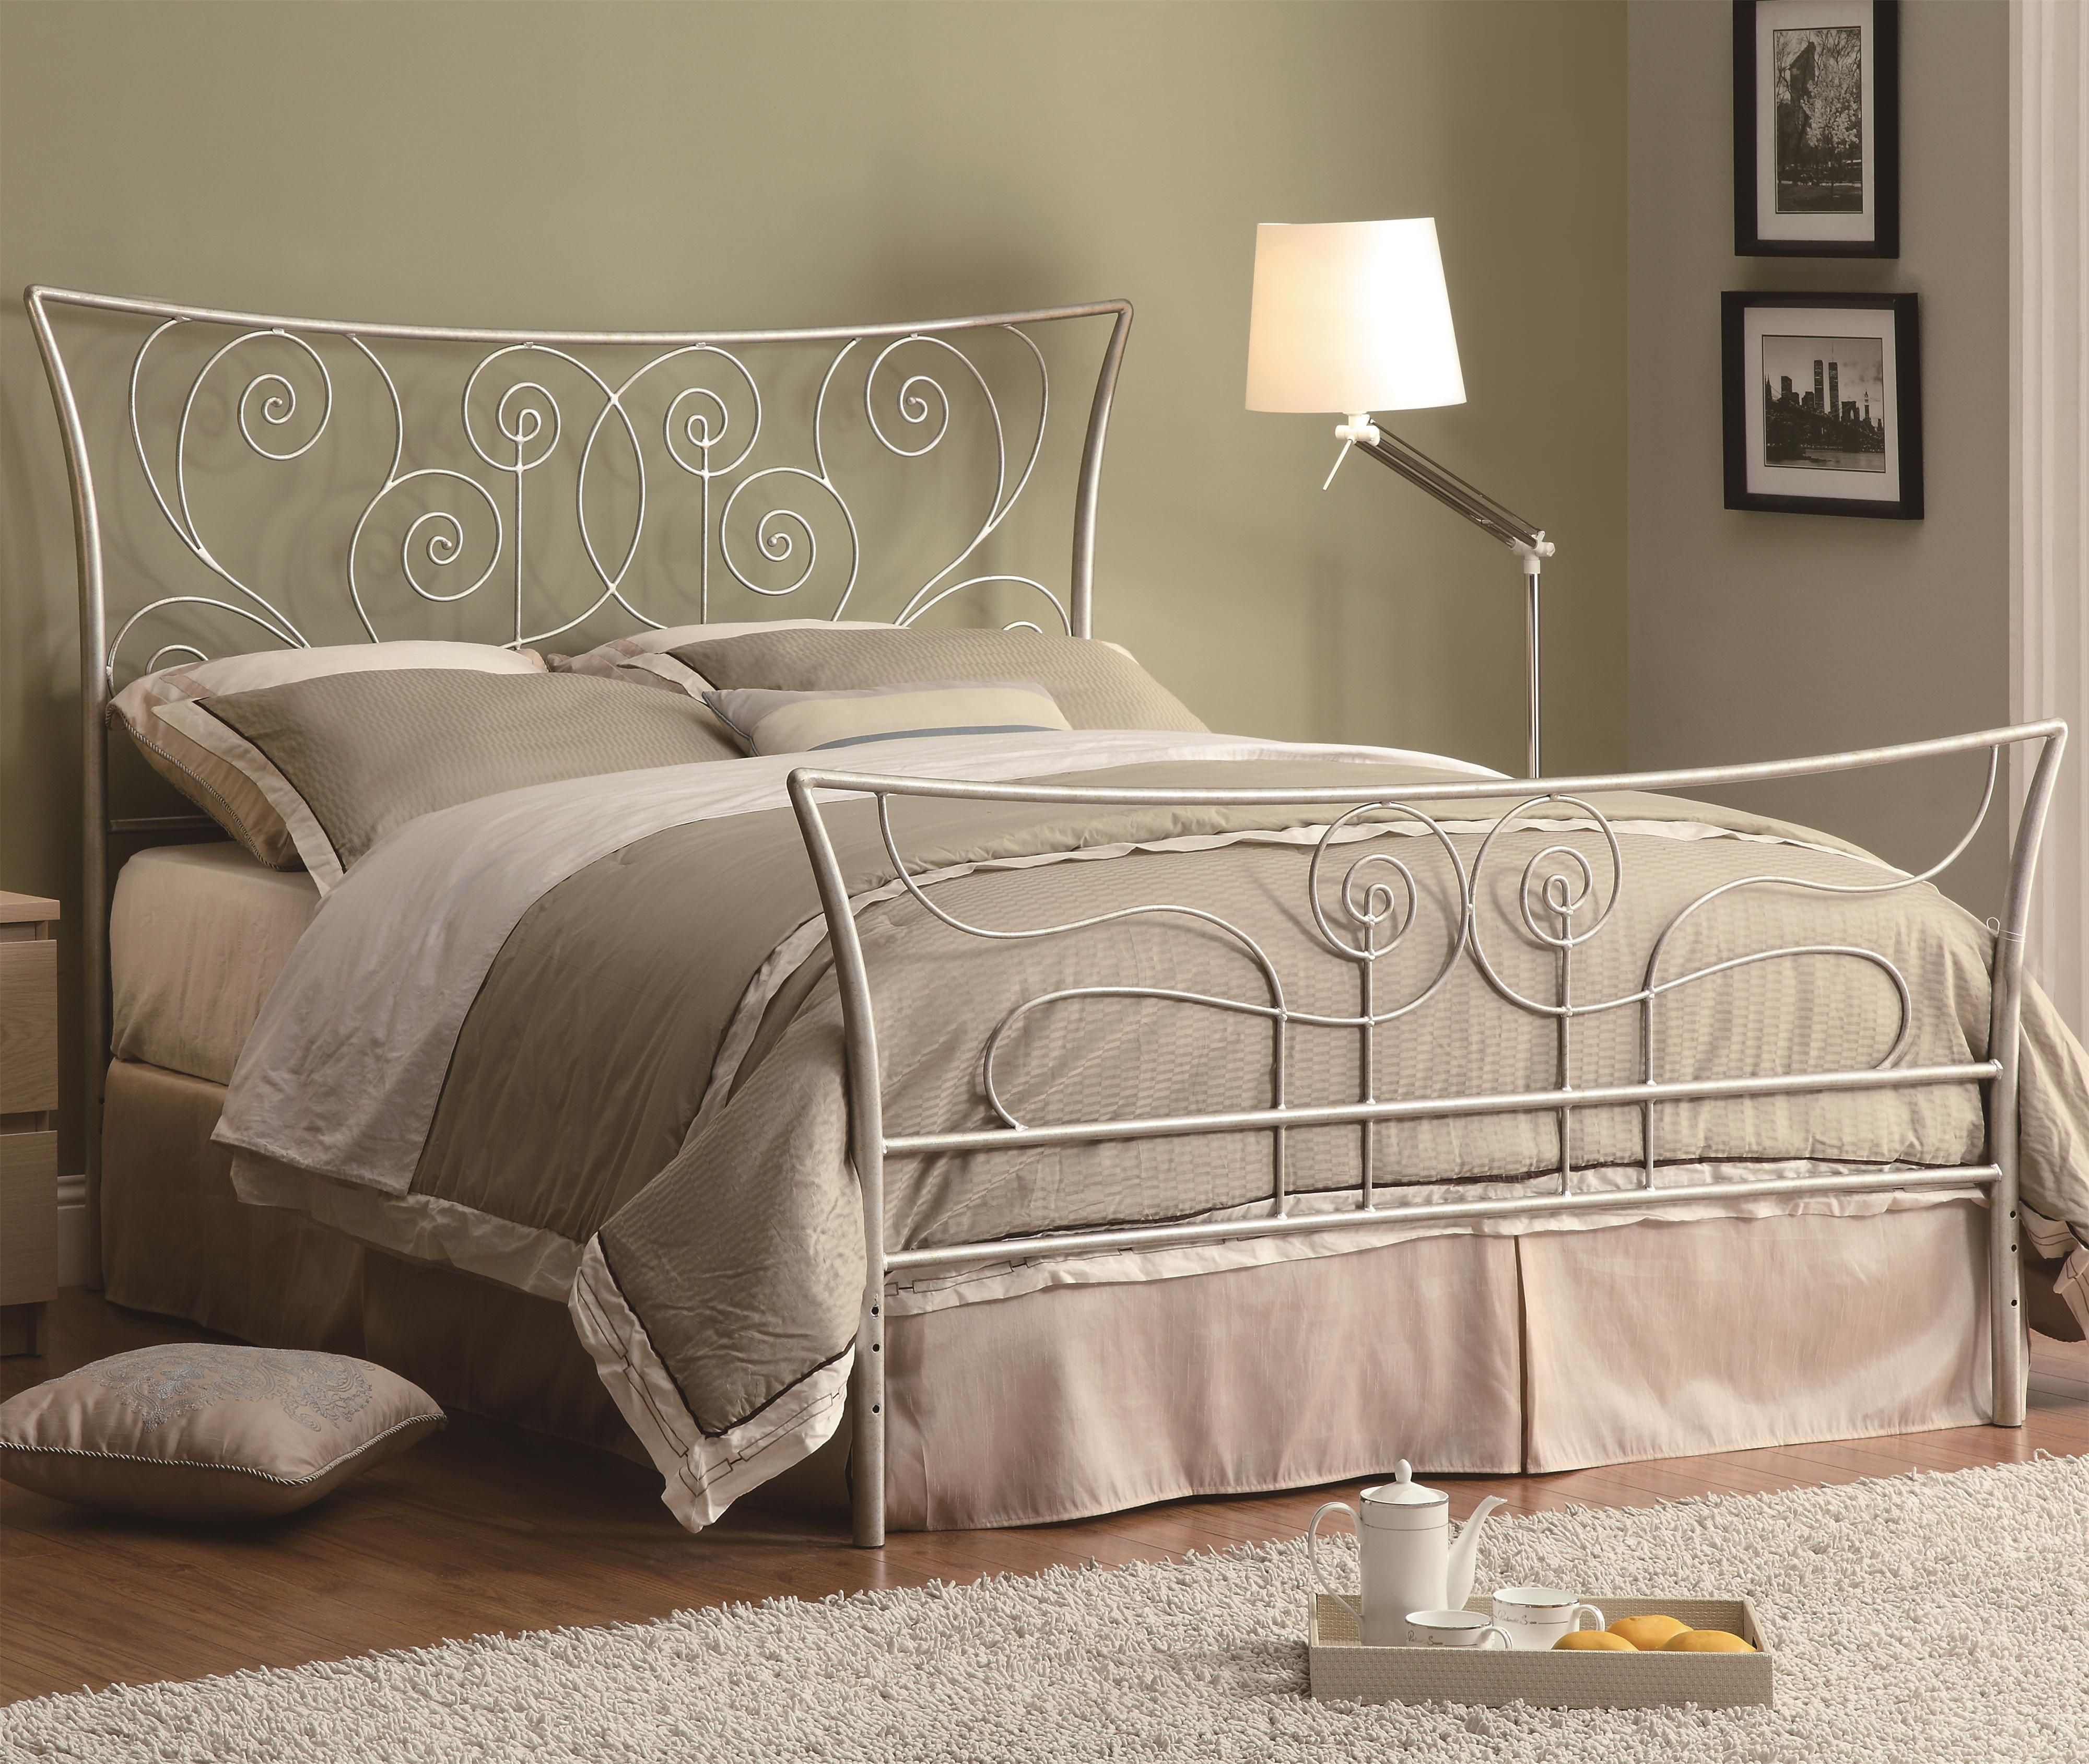 Iron Beds and Headboards Queen Bed by Coaster